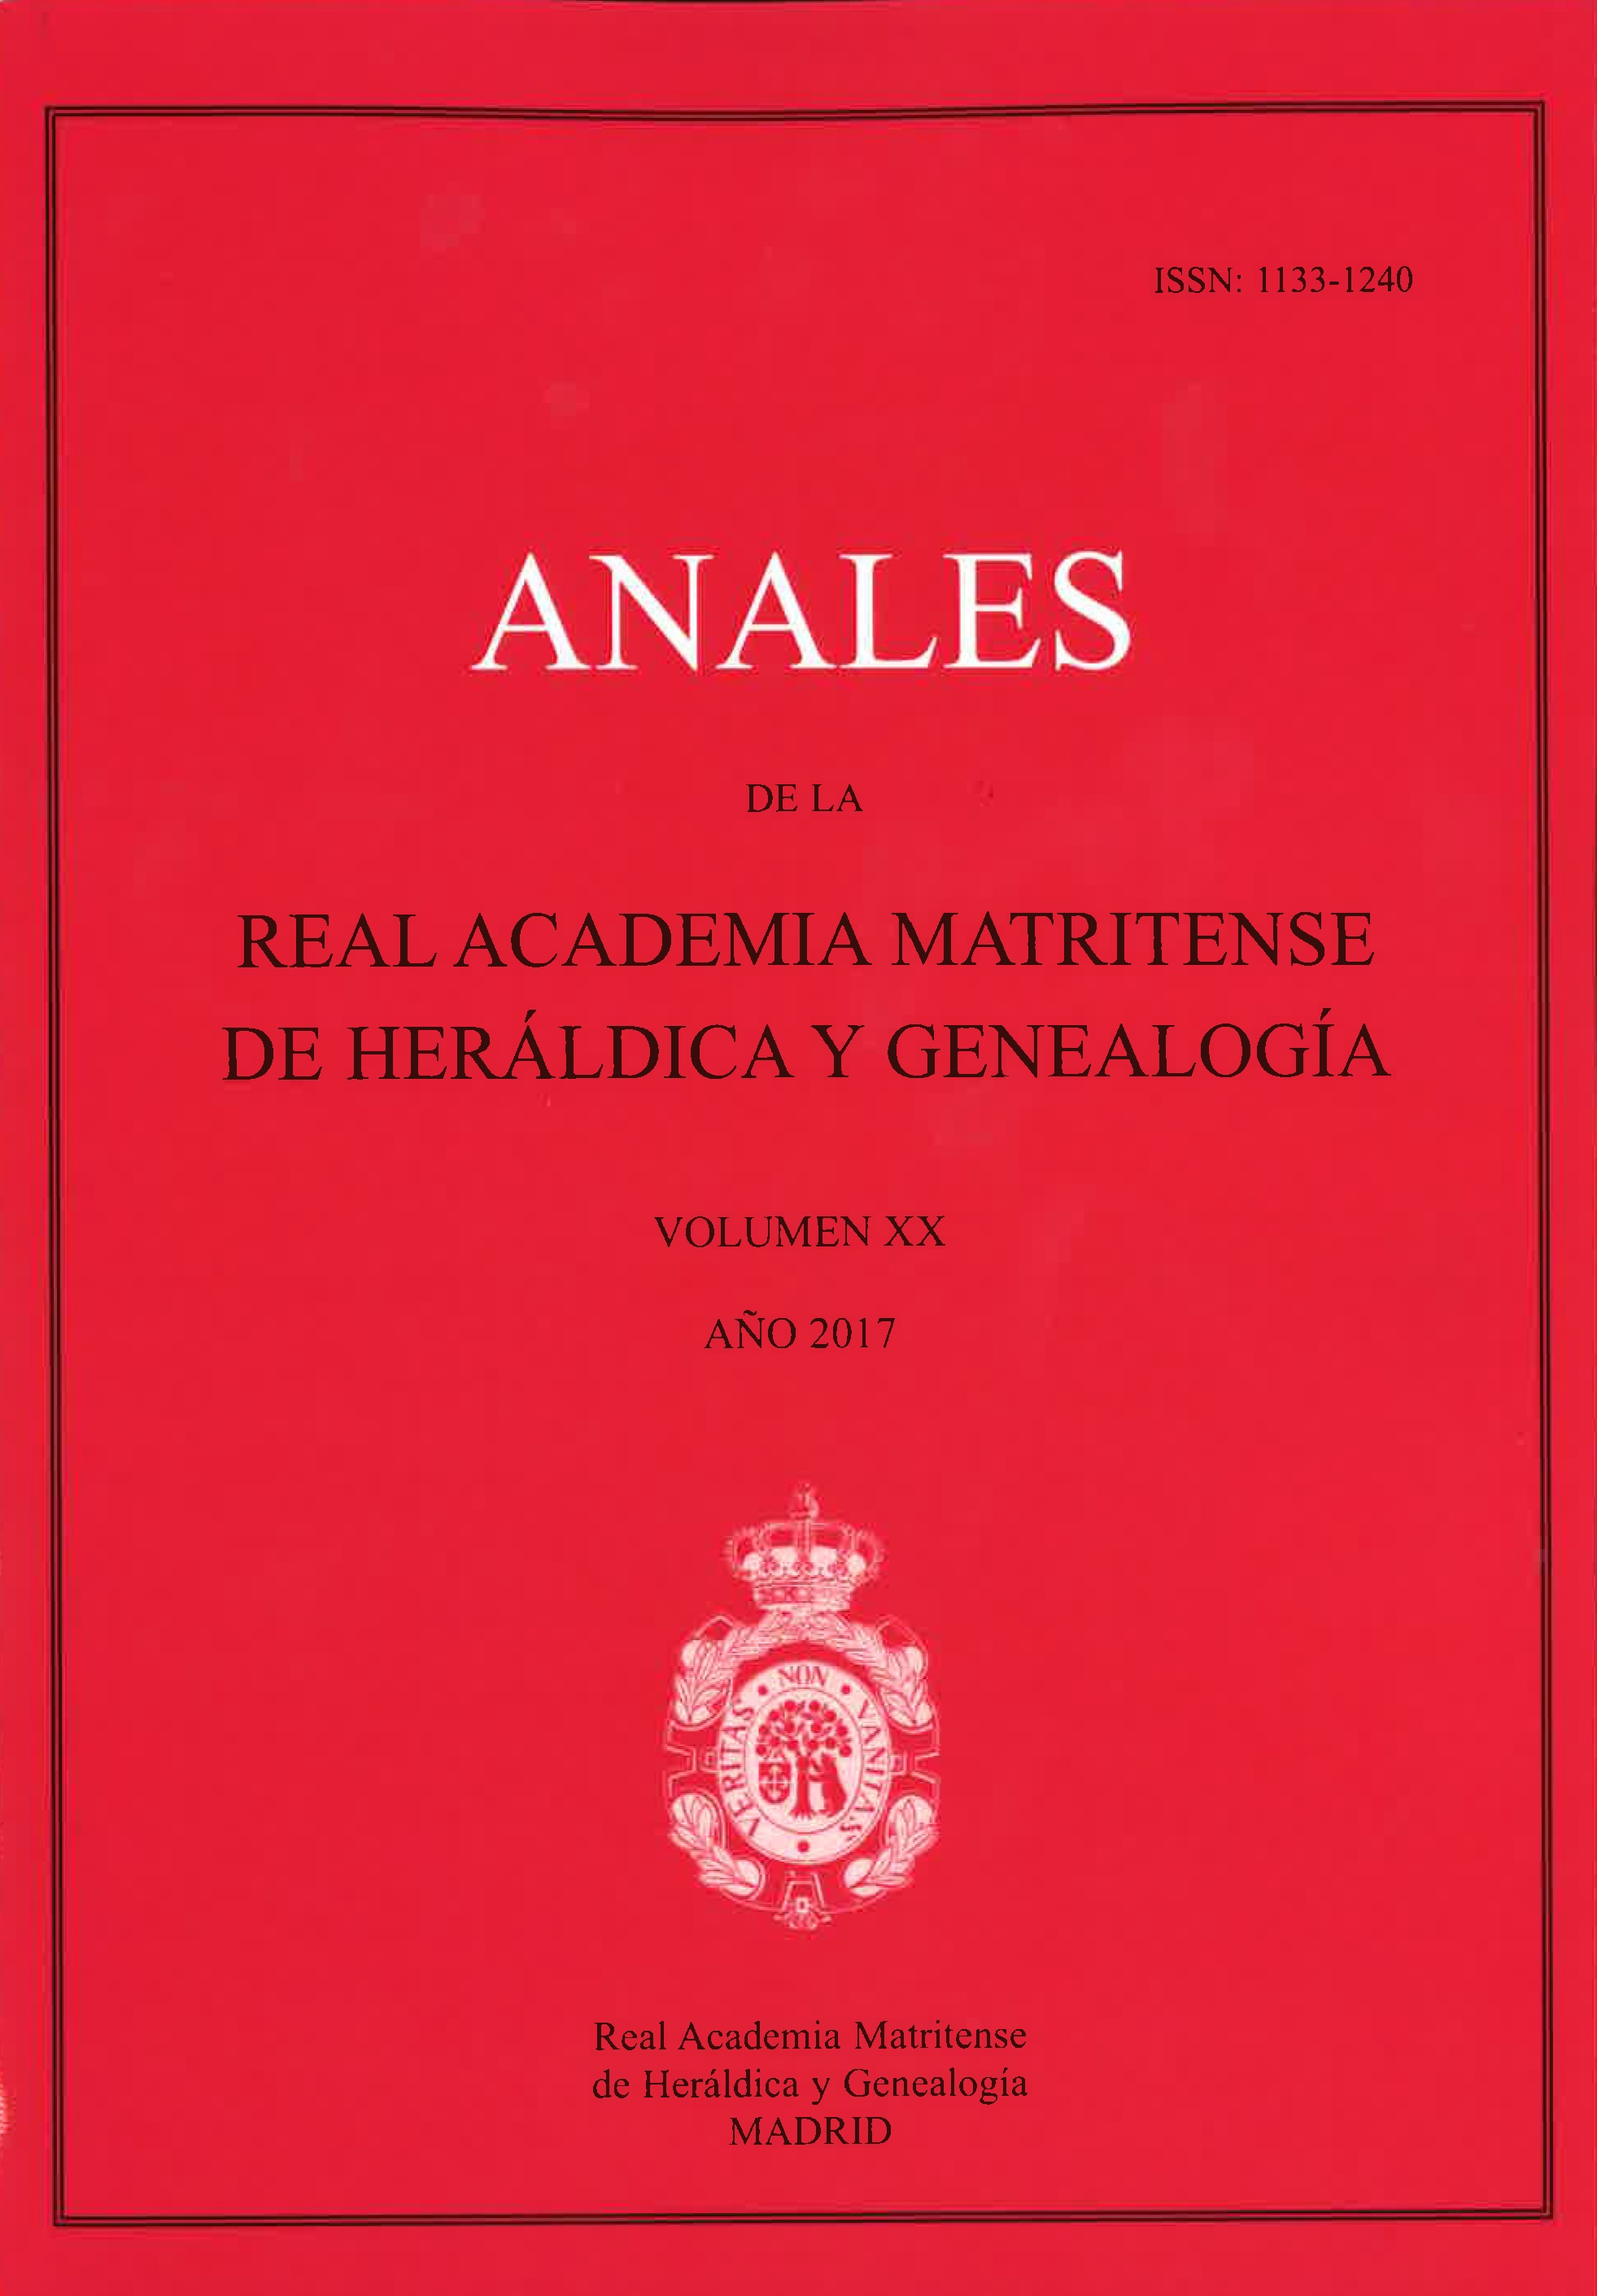 anales-2017